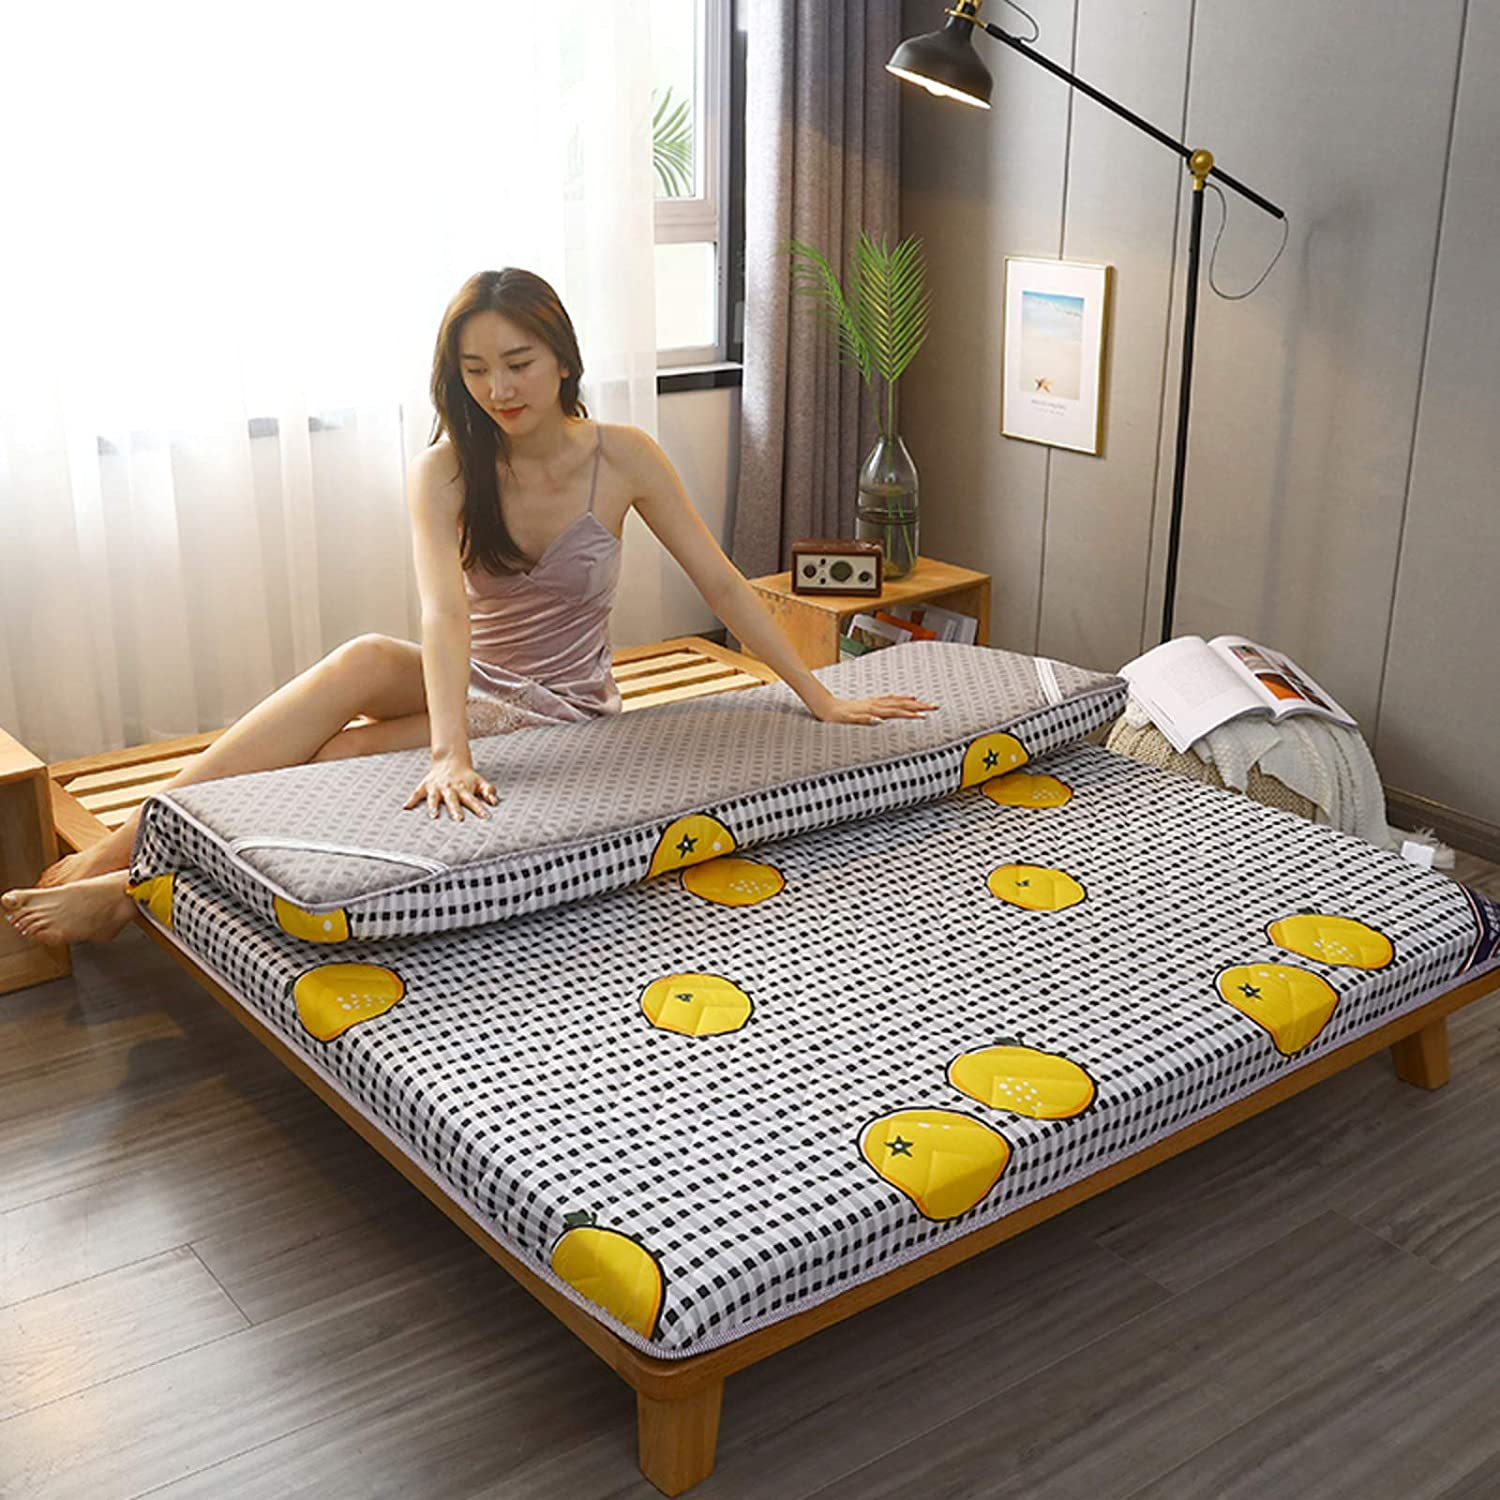 LXSHMF Japanese Floor Futon Mattress,Thick Tatami Floor Mat Sleeping Pad Folding Dormitory Mattress Kids Floor Lounger Bed Couches and Sofas